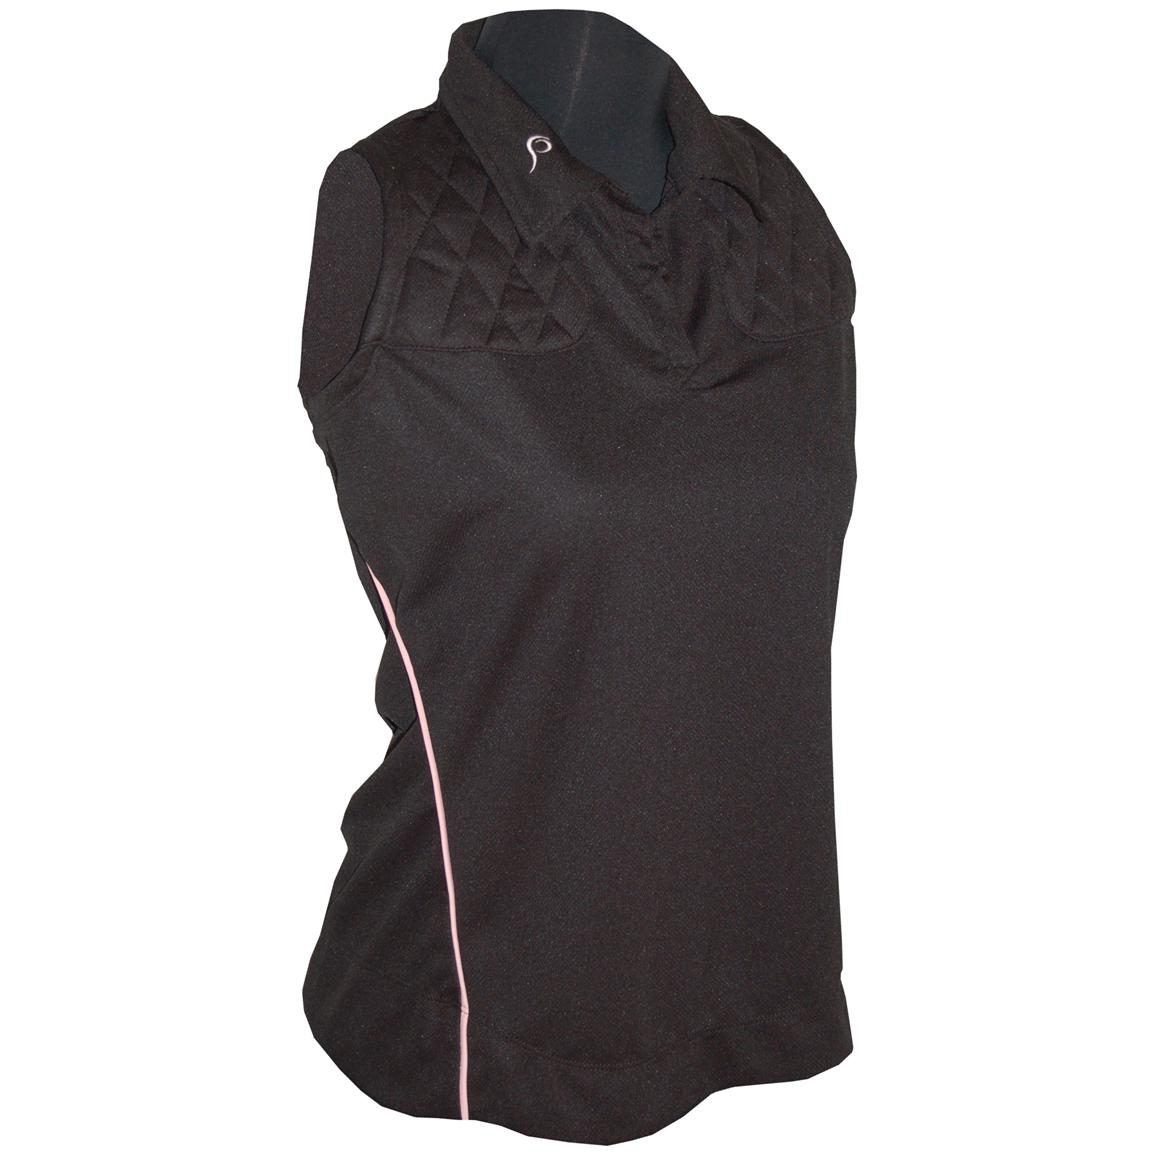 Women's Prois® Competitor Sleeveless Shooting Shirt, Black